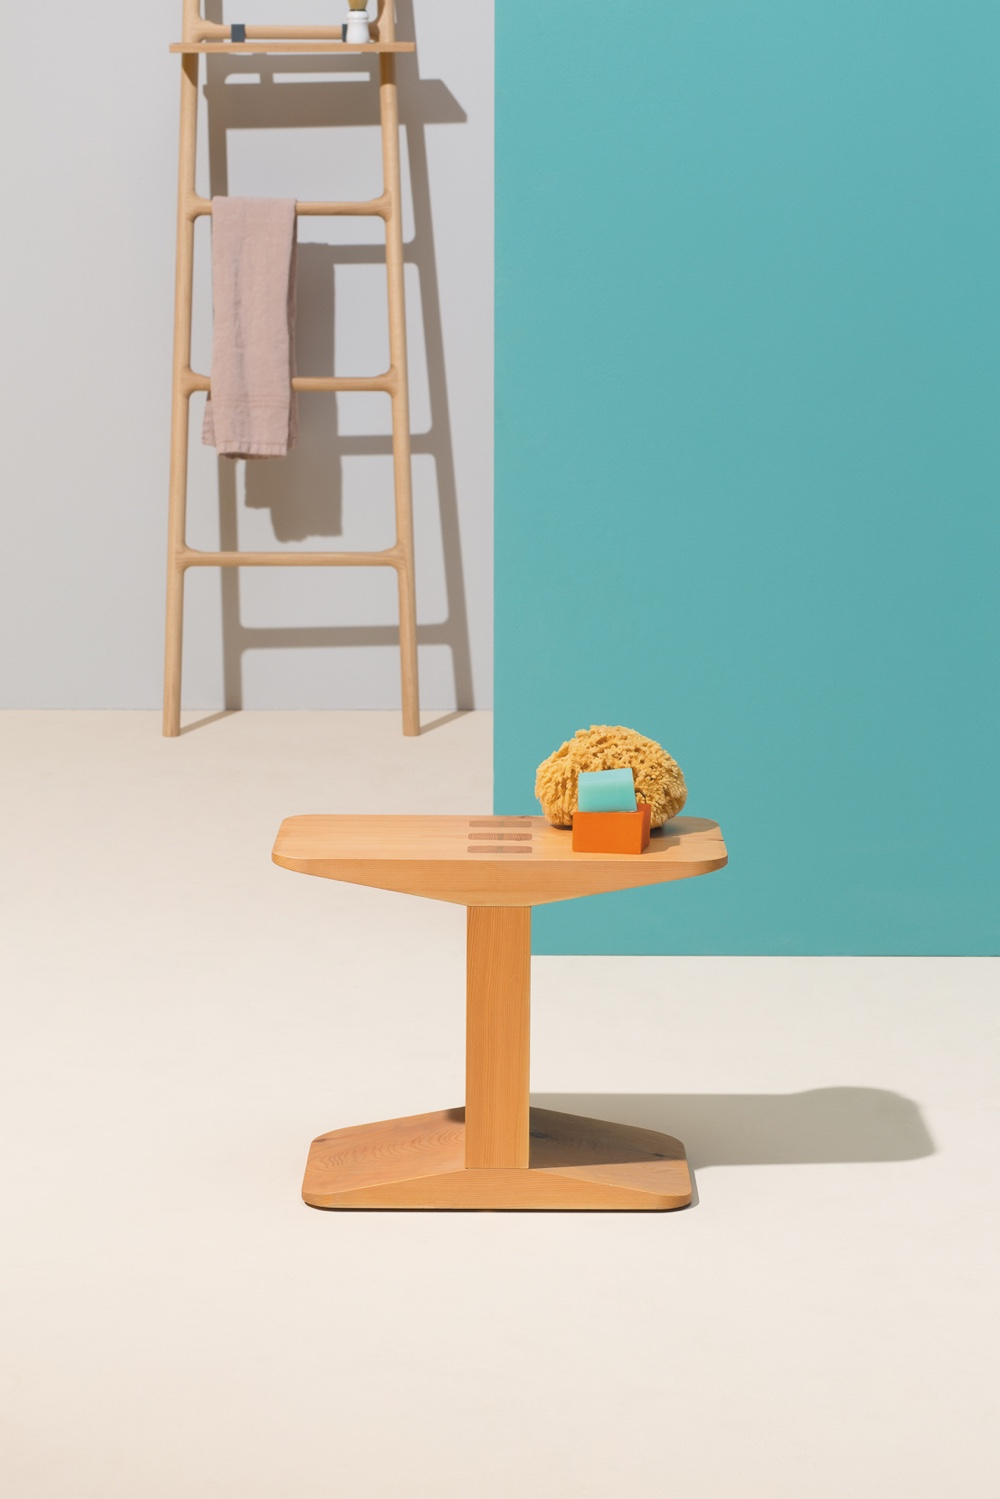 The Centanni solid larch stool designed by James Irvine. Image via Klat.